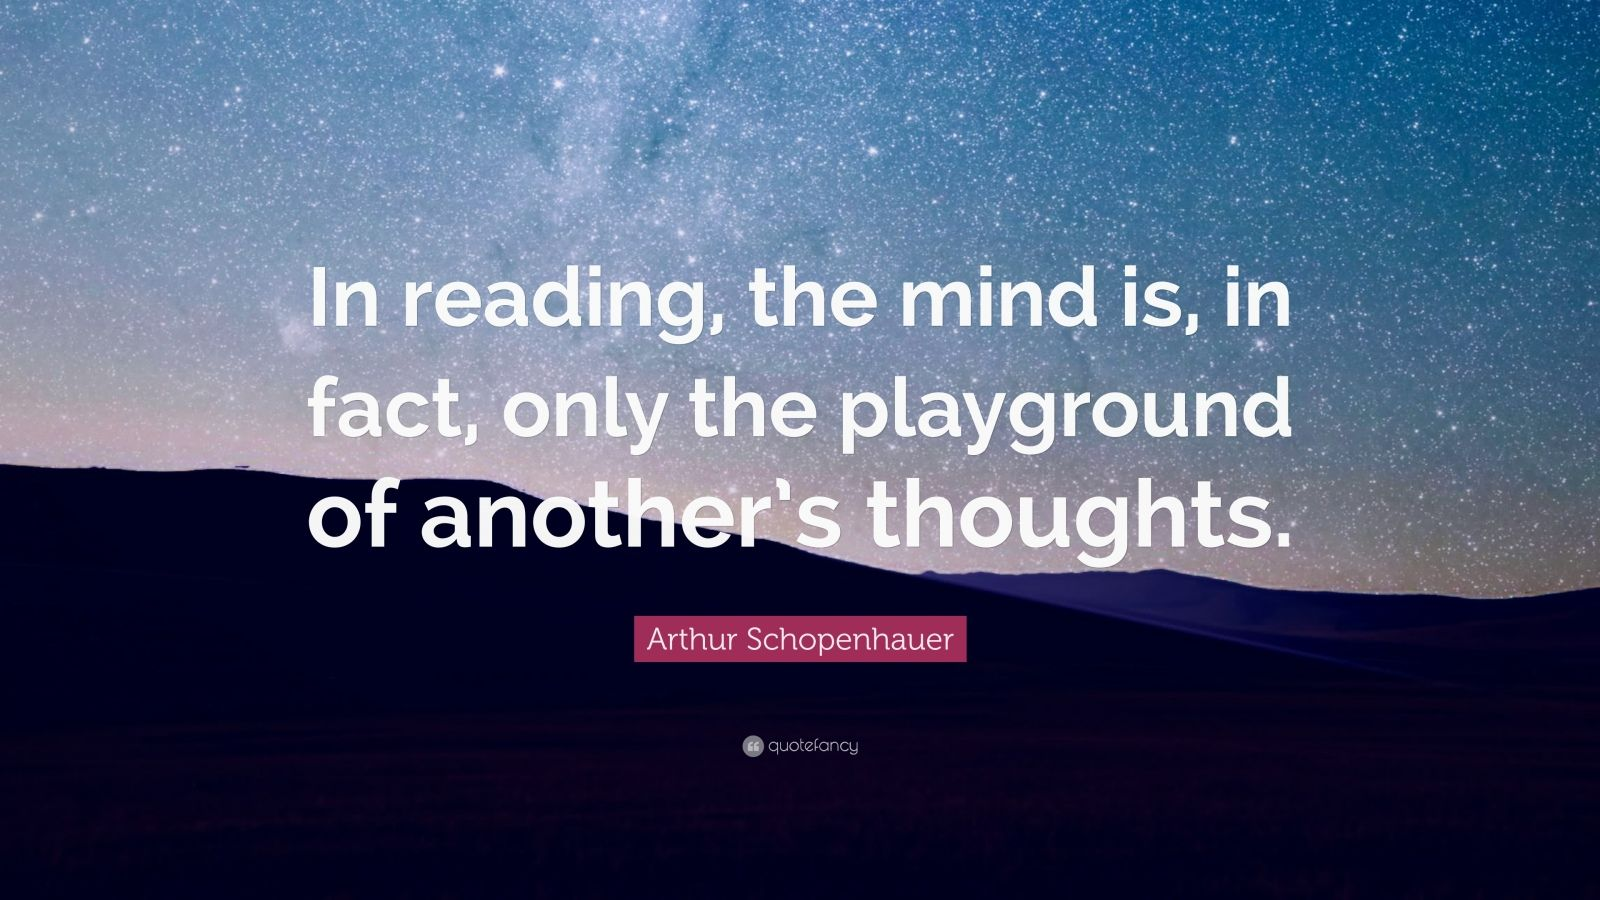 """Arthur Schopenhauer Quote: """"In reading, the mind is, in fact, only the playground of another's thoughts."""""""